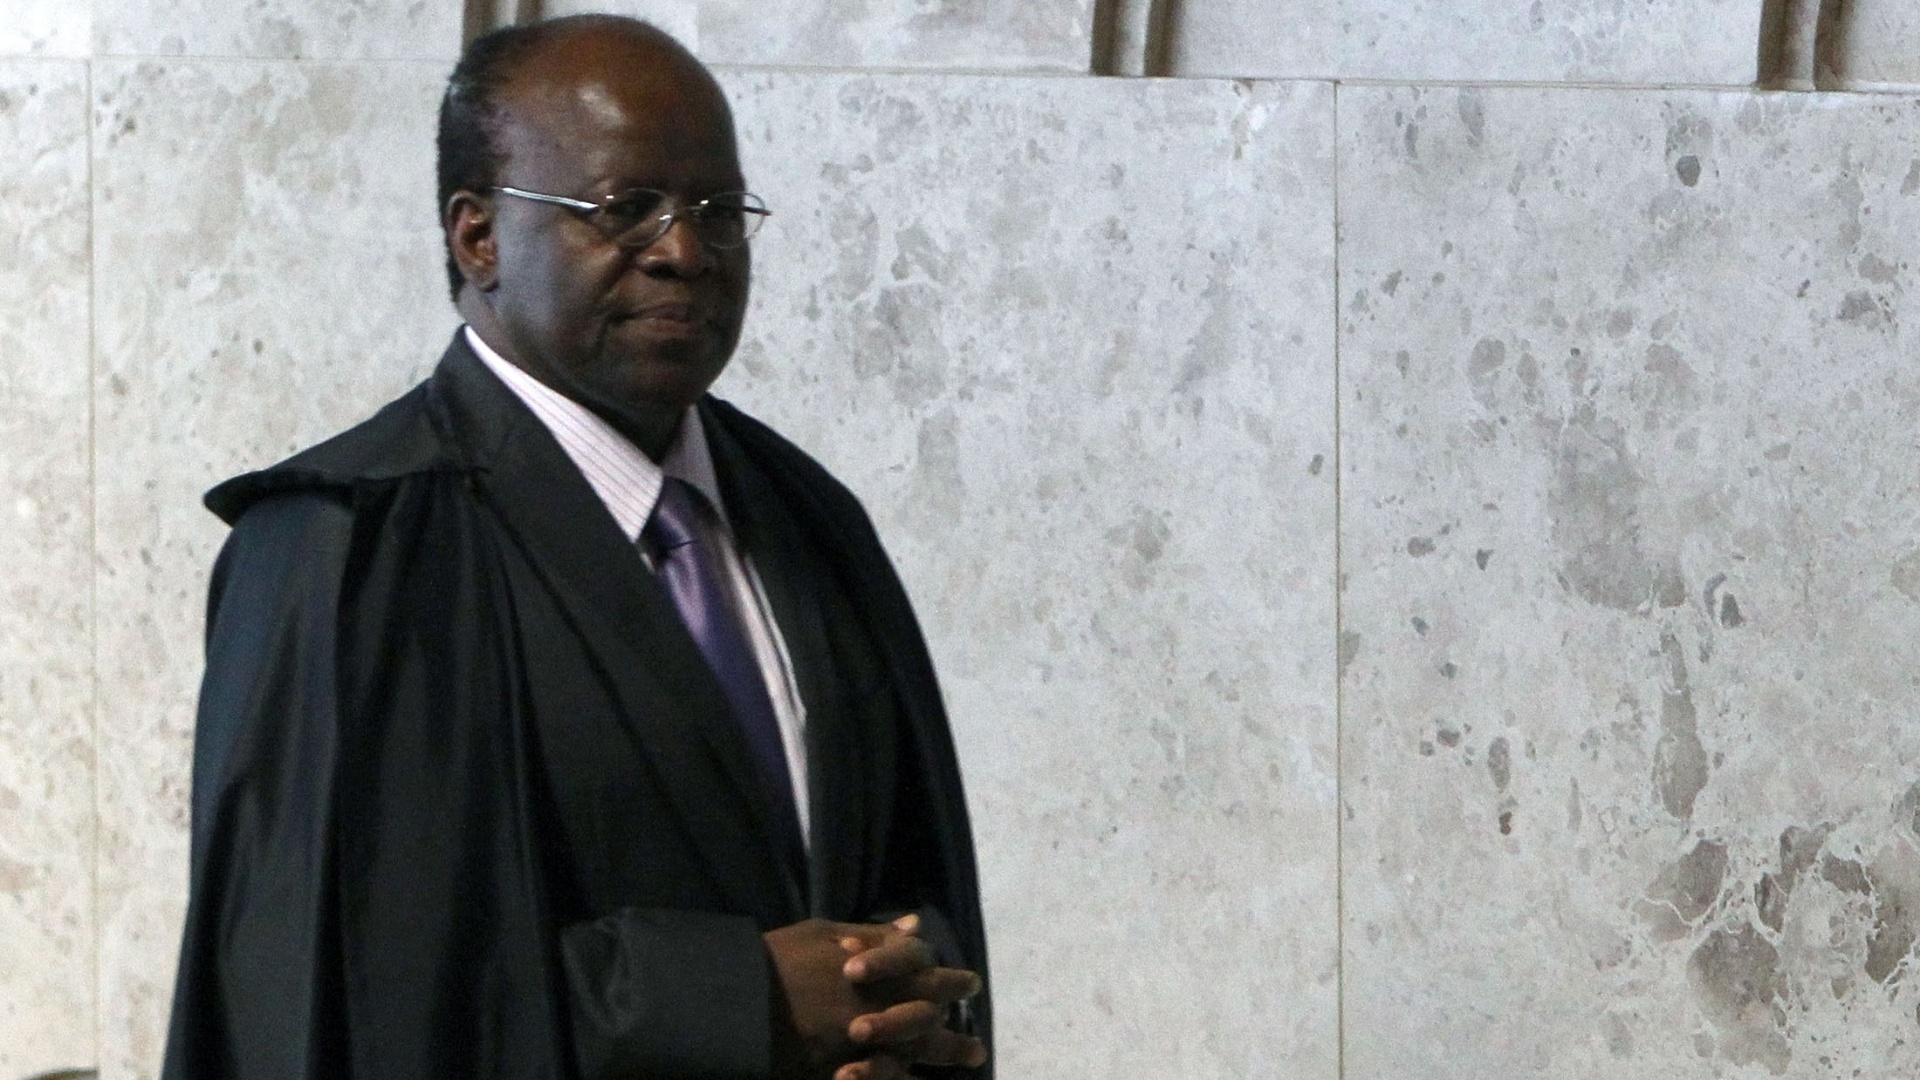 24.out.2012 - O ministro-relator do processo do mensalo, Joaquim Barbosa, entra no plenrio para sesso que deve terminar de fixar a pena de priso para o publicitrio Marcos Valrio. Barbosa no informou quais sero os ncleos que tero suas penas discutidas a seguir